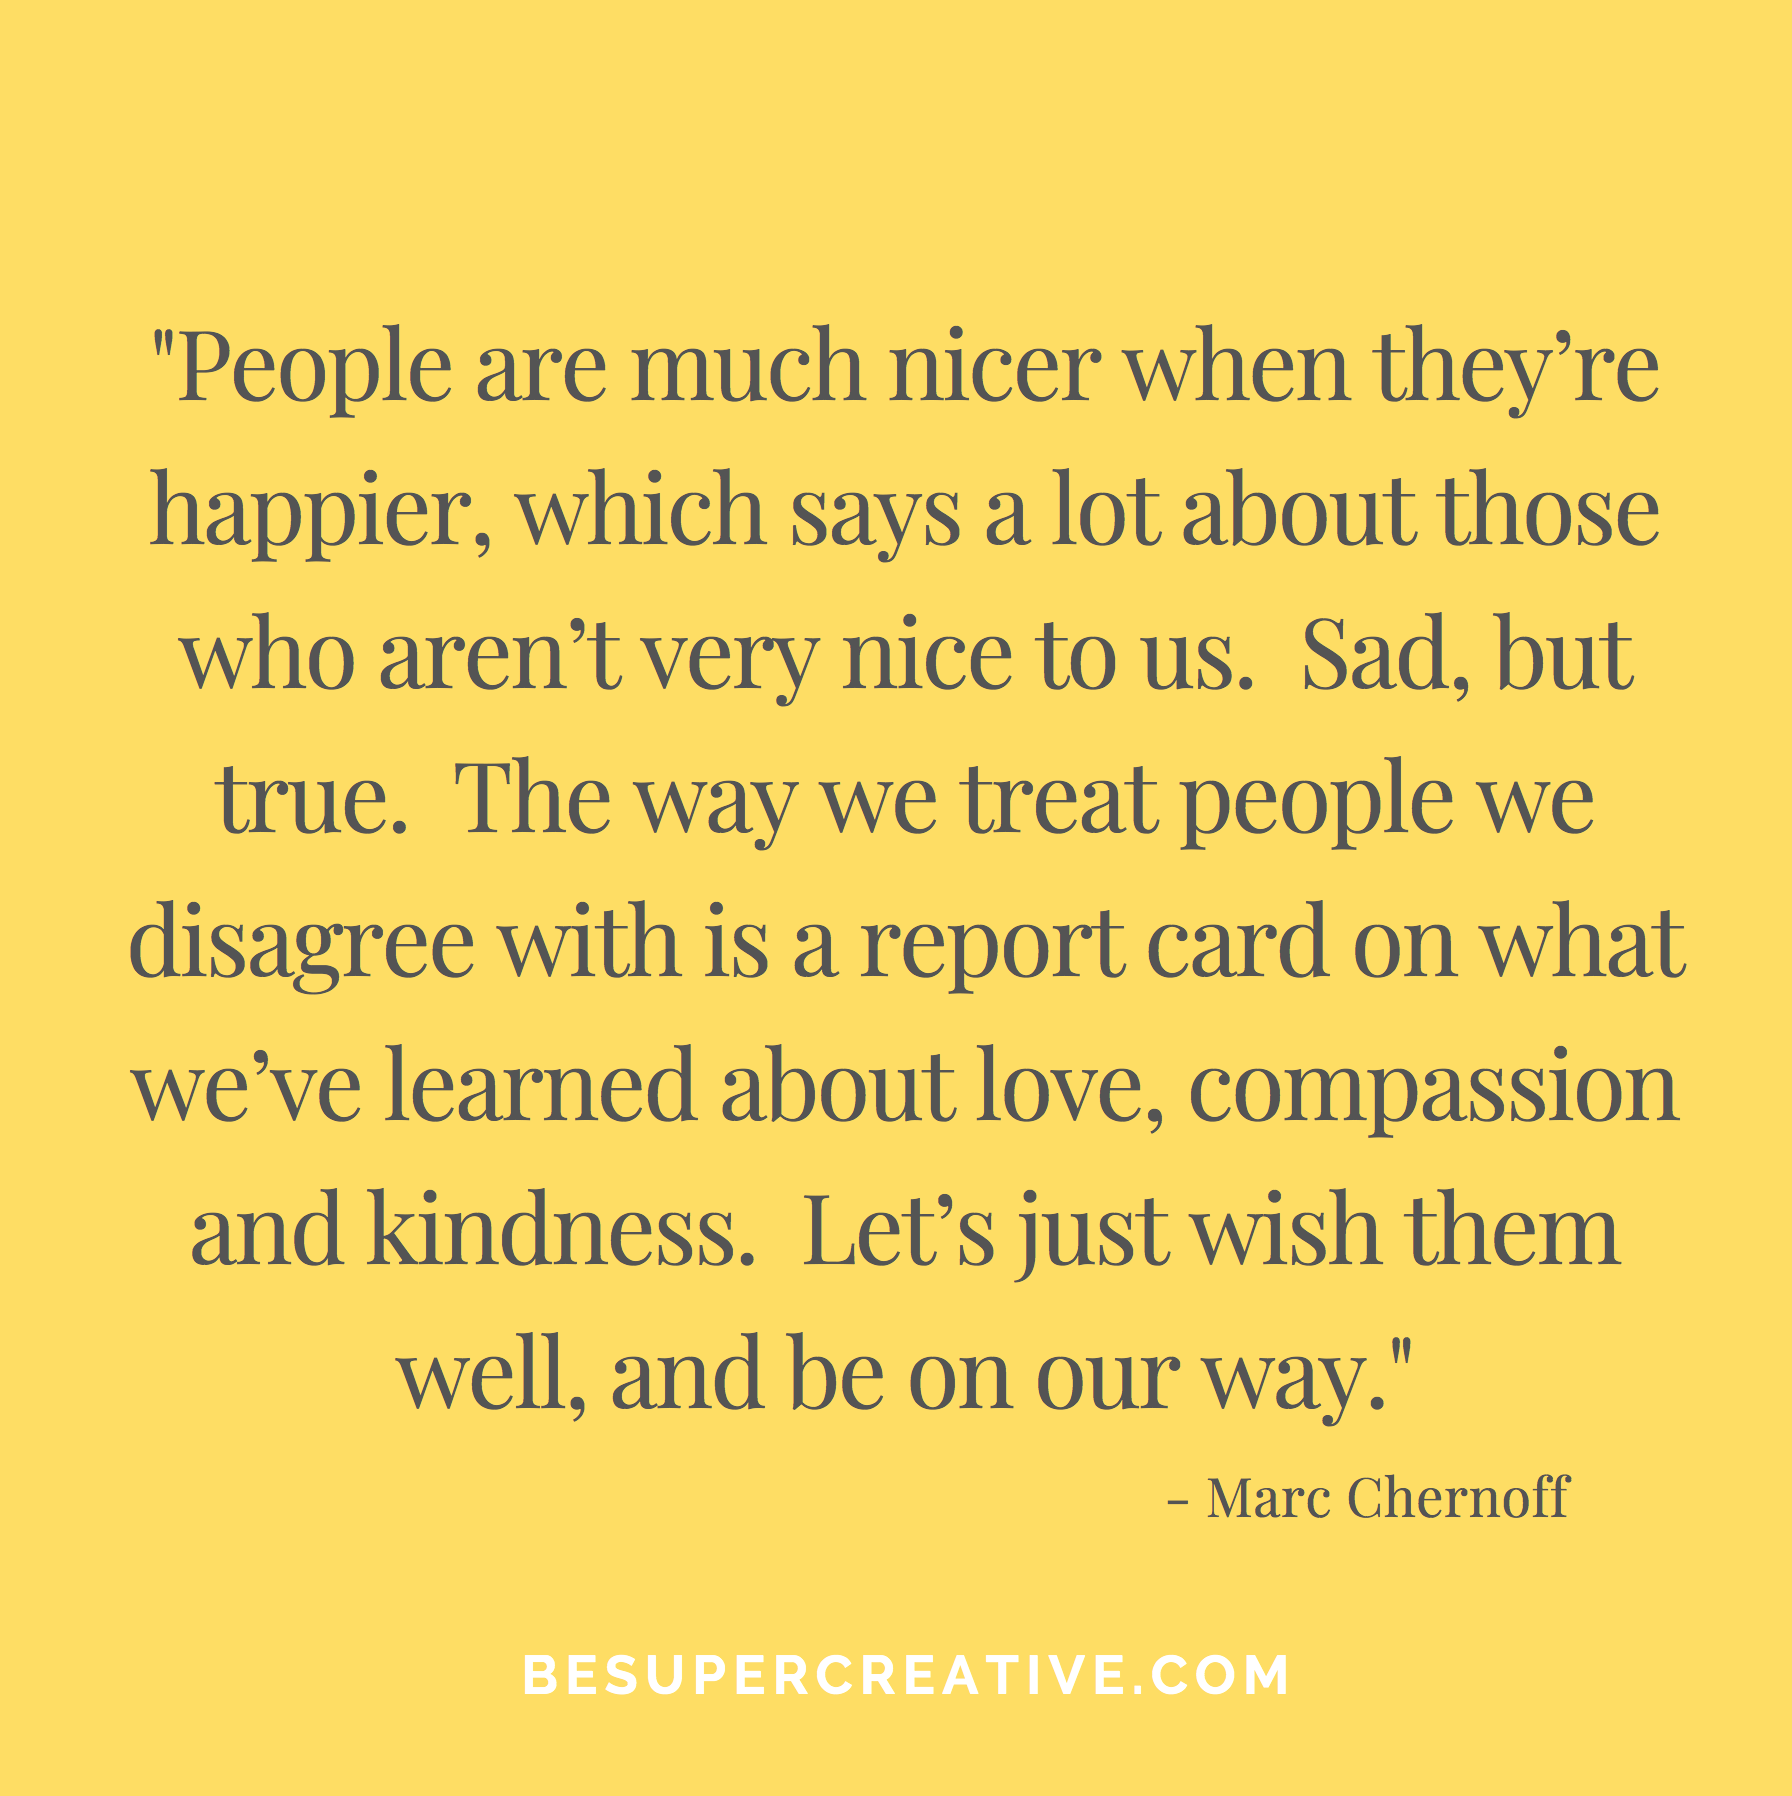 """People are much nicer when they're happier, which says a lot about those who aren't very nice to us.  Sad, but true.  The way we treat people we disagree with is a report card on what we've learned about love, compassion and kindness.  Let's just wish them well, and be on our way."""